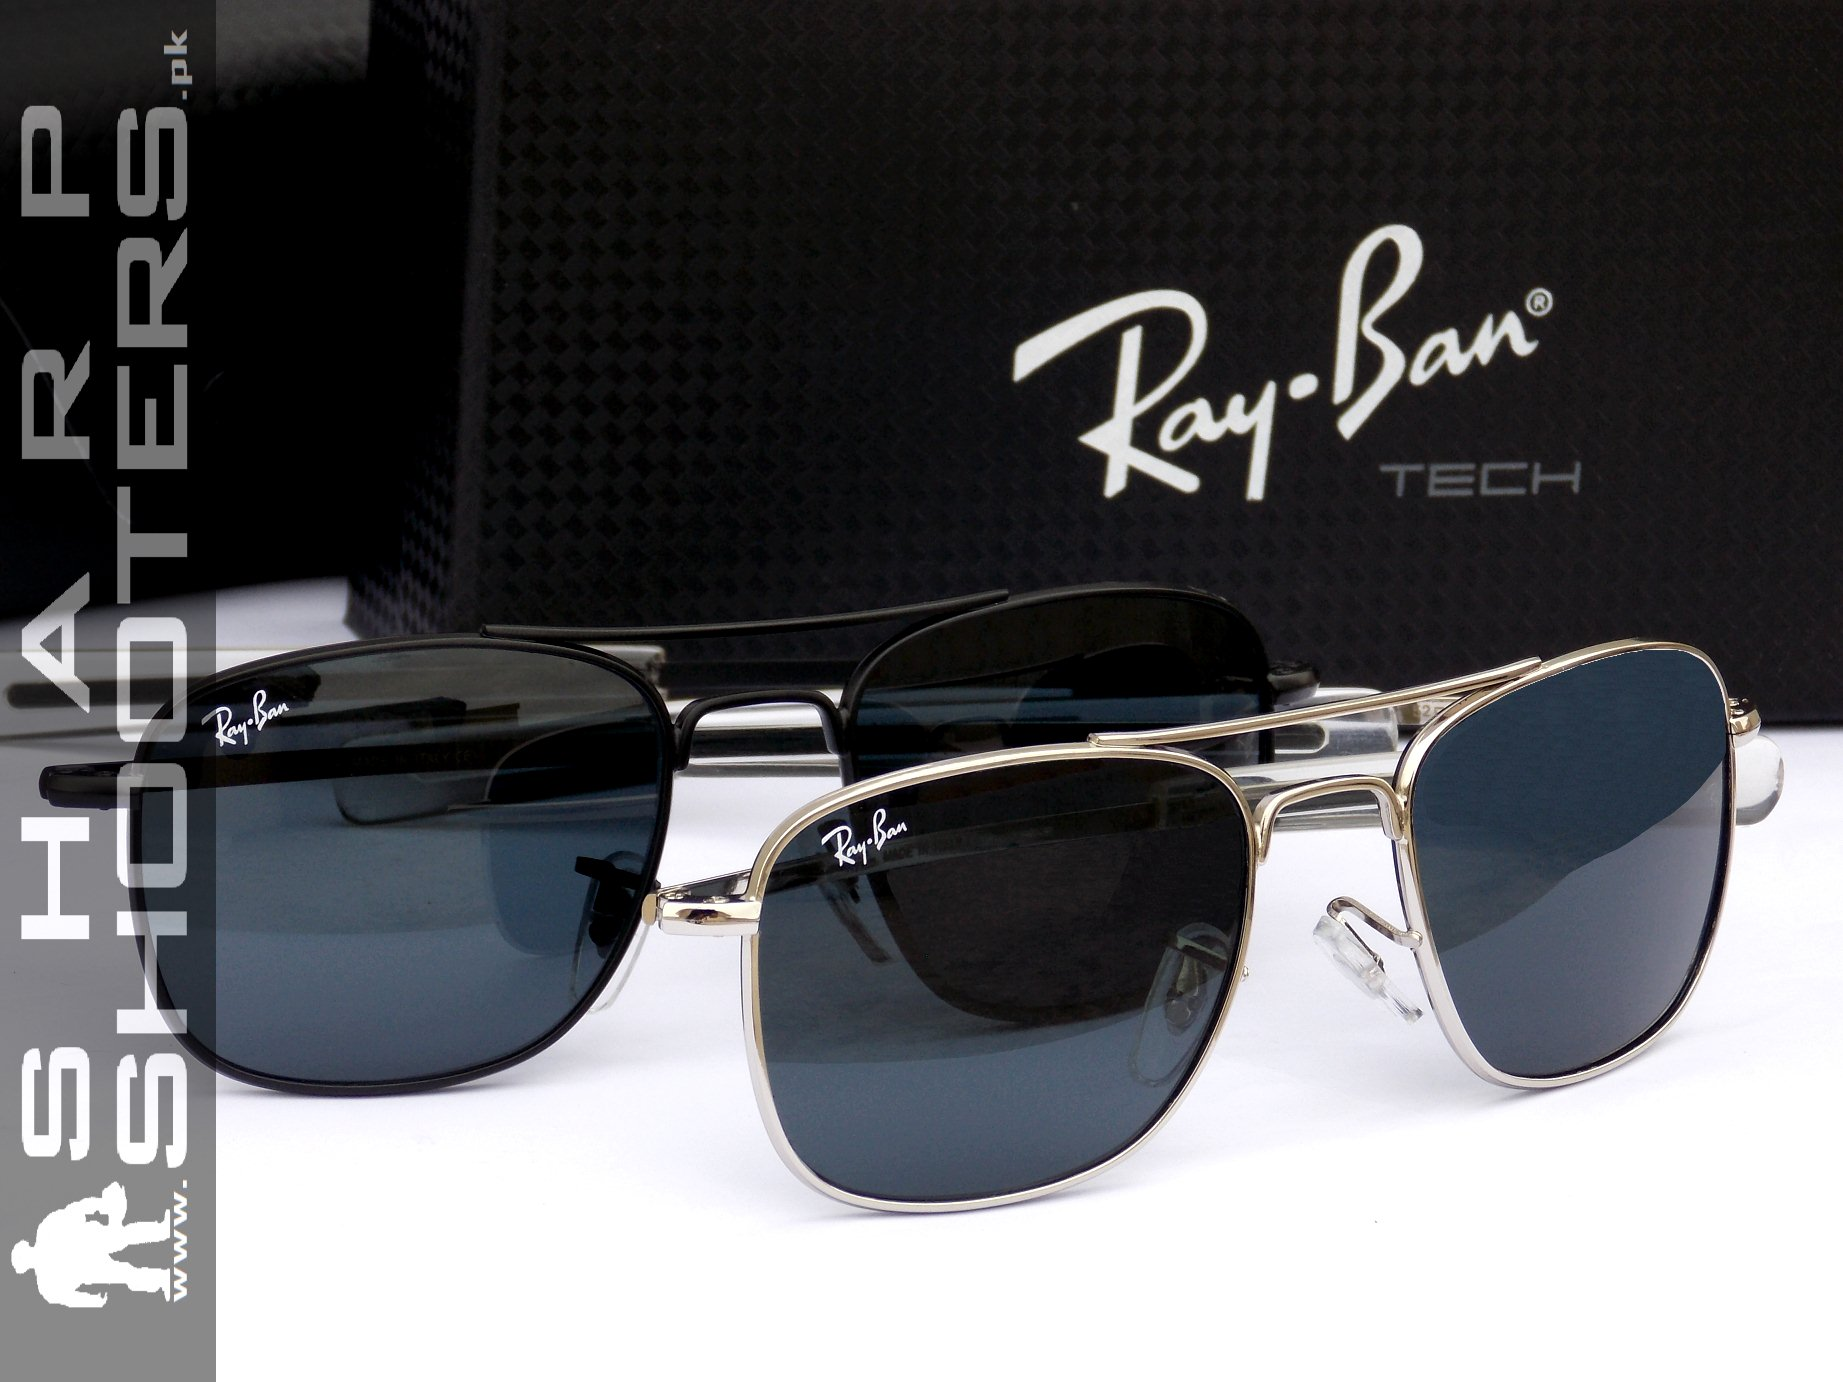 a3aaa6b9026 American Optical Vs Ray Ban « Heritage Malta